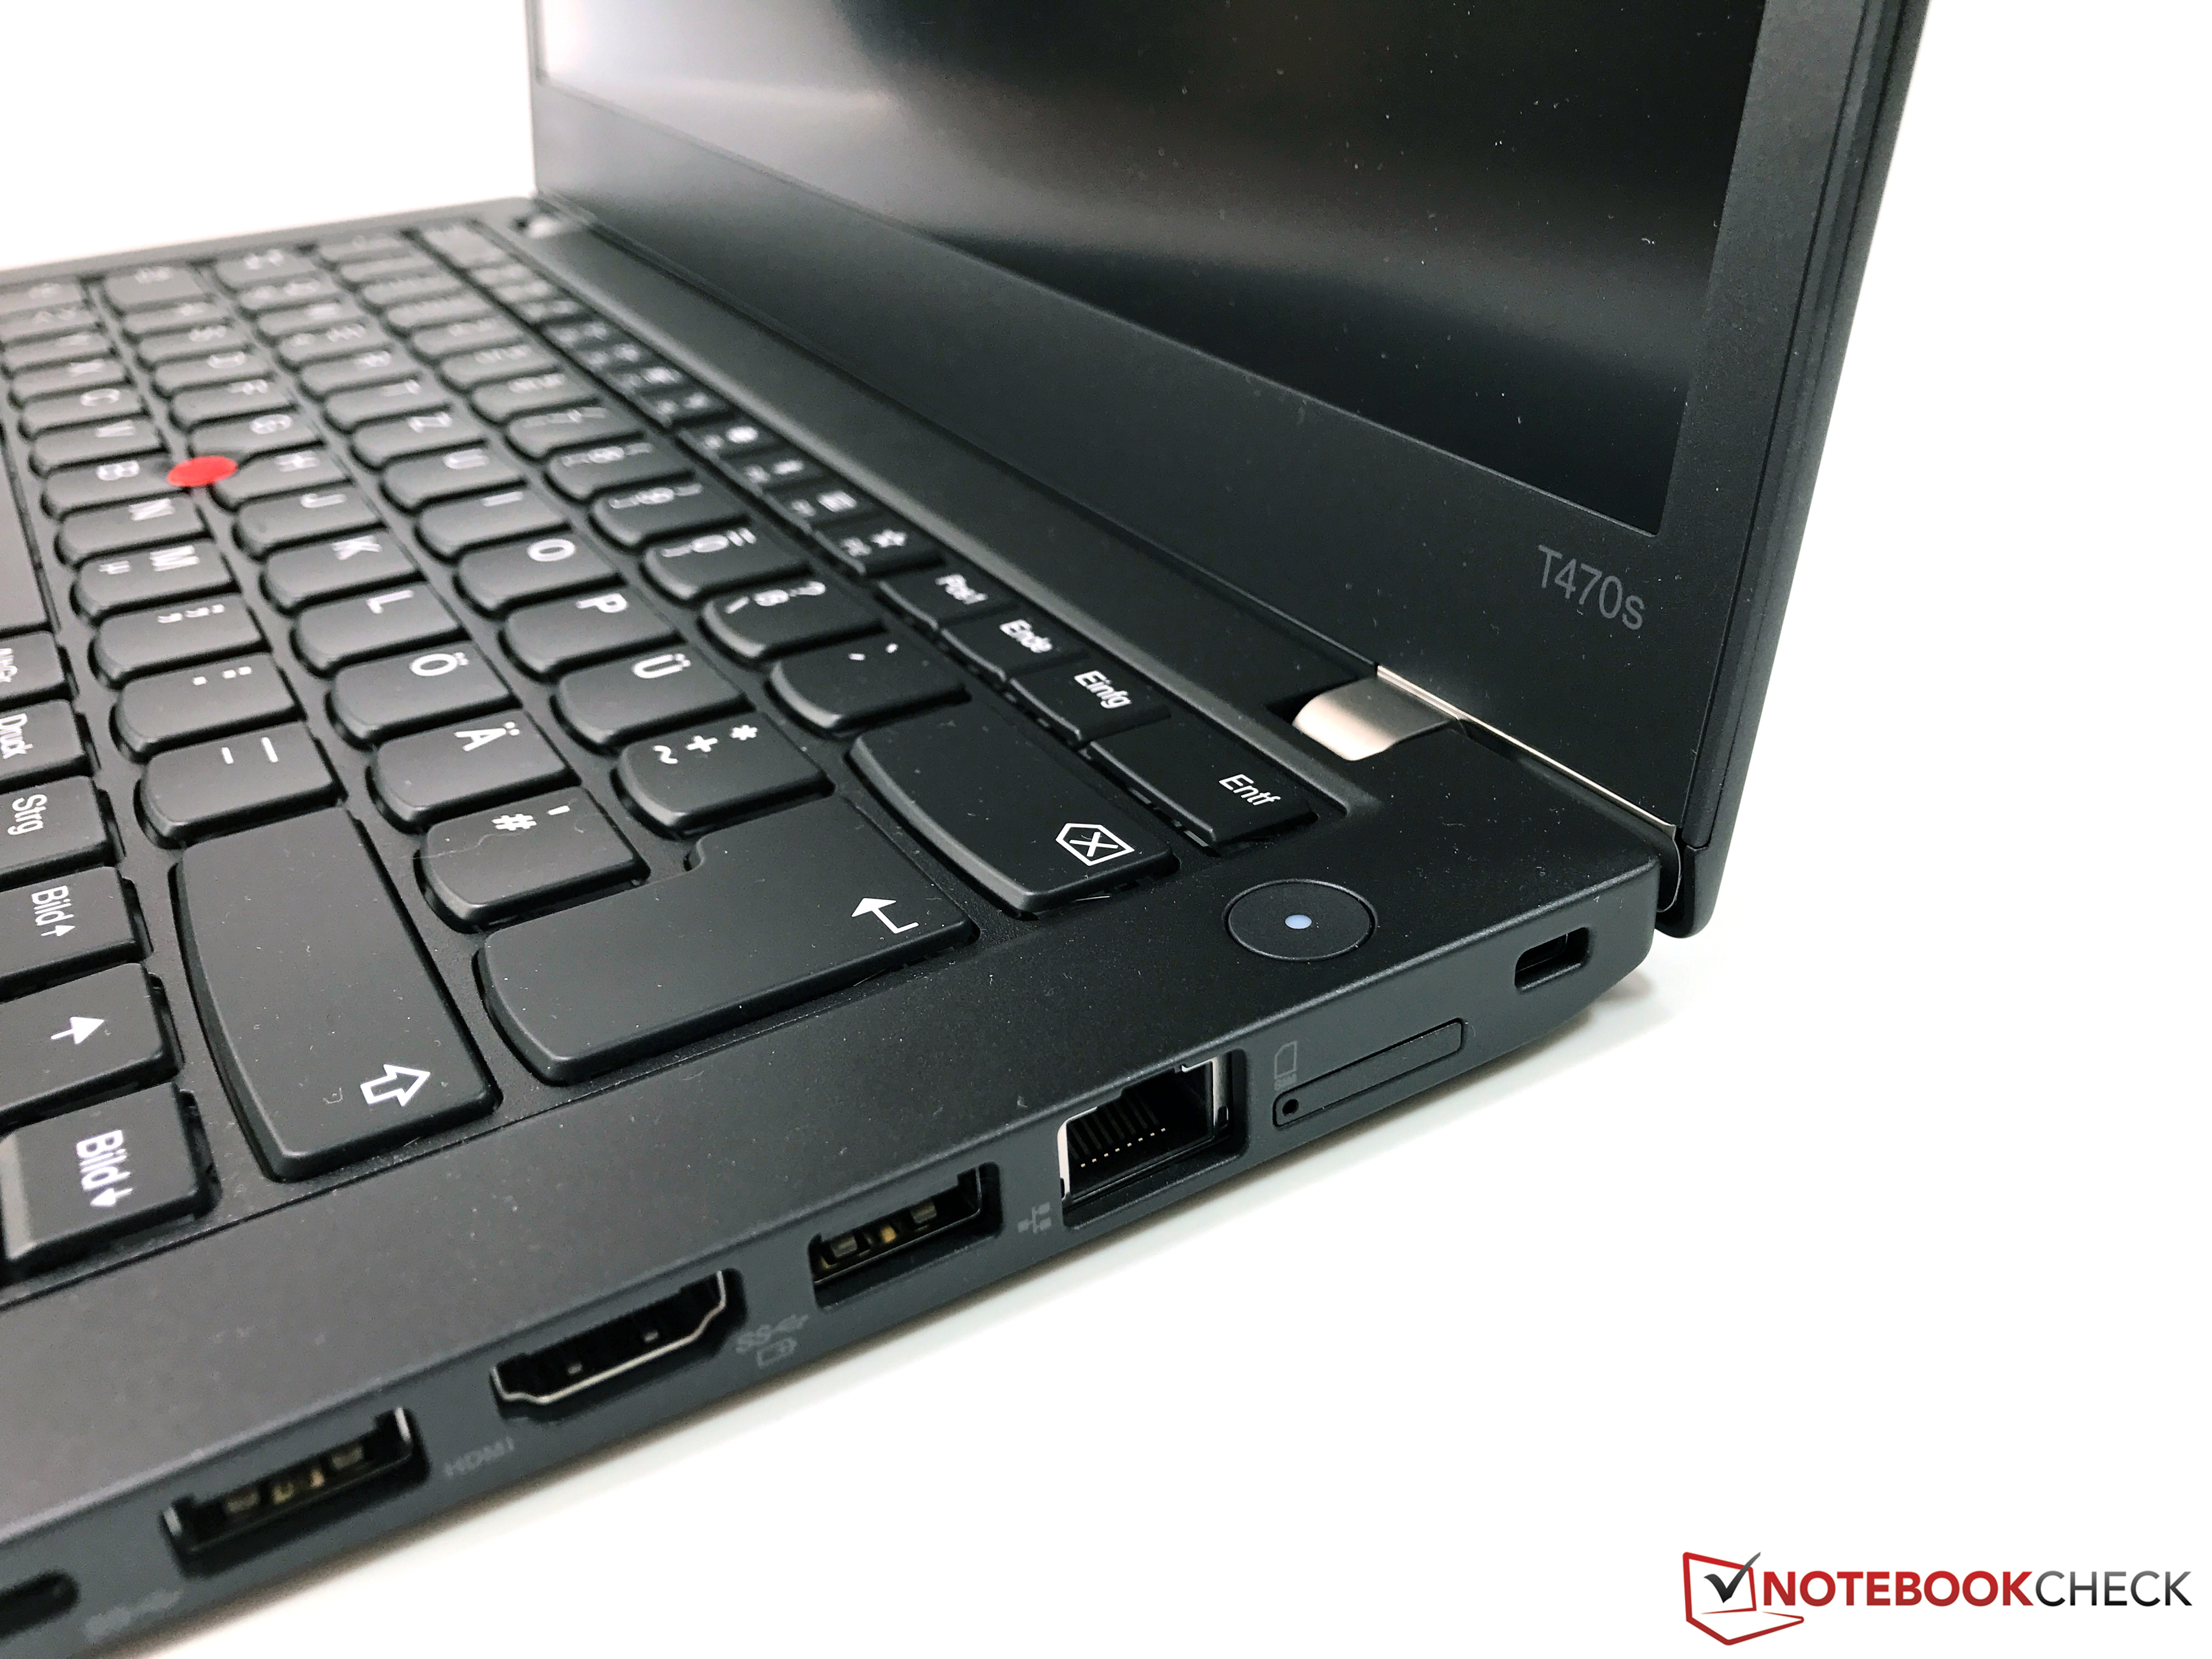 lenovo thinkpad t470s what is the best display option